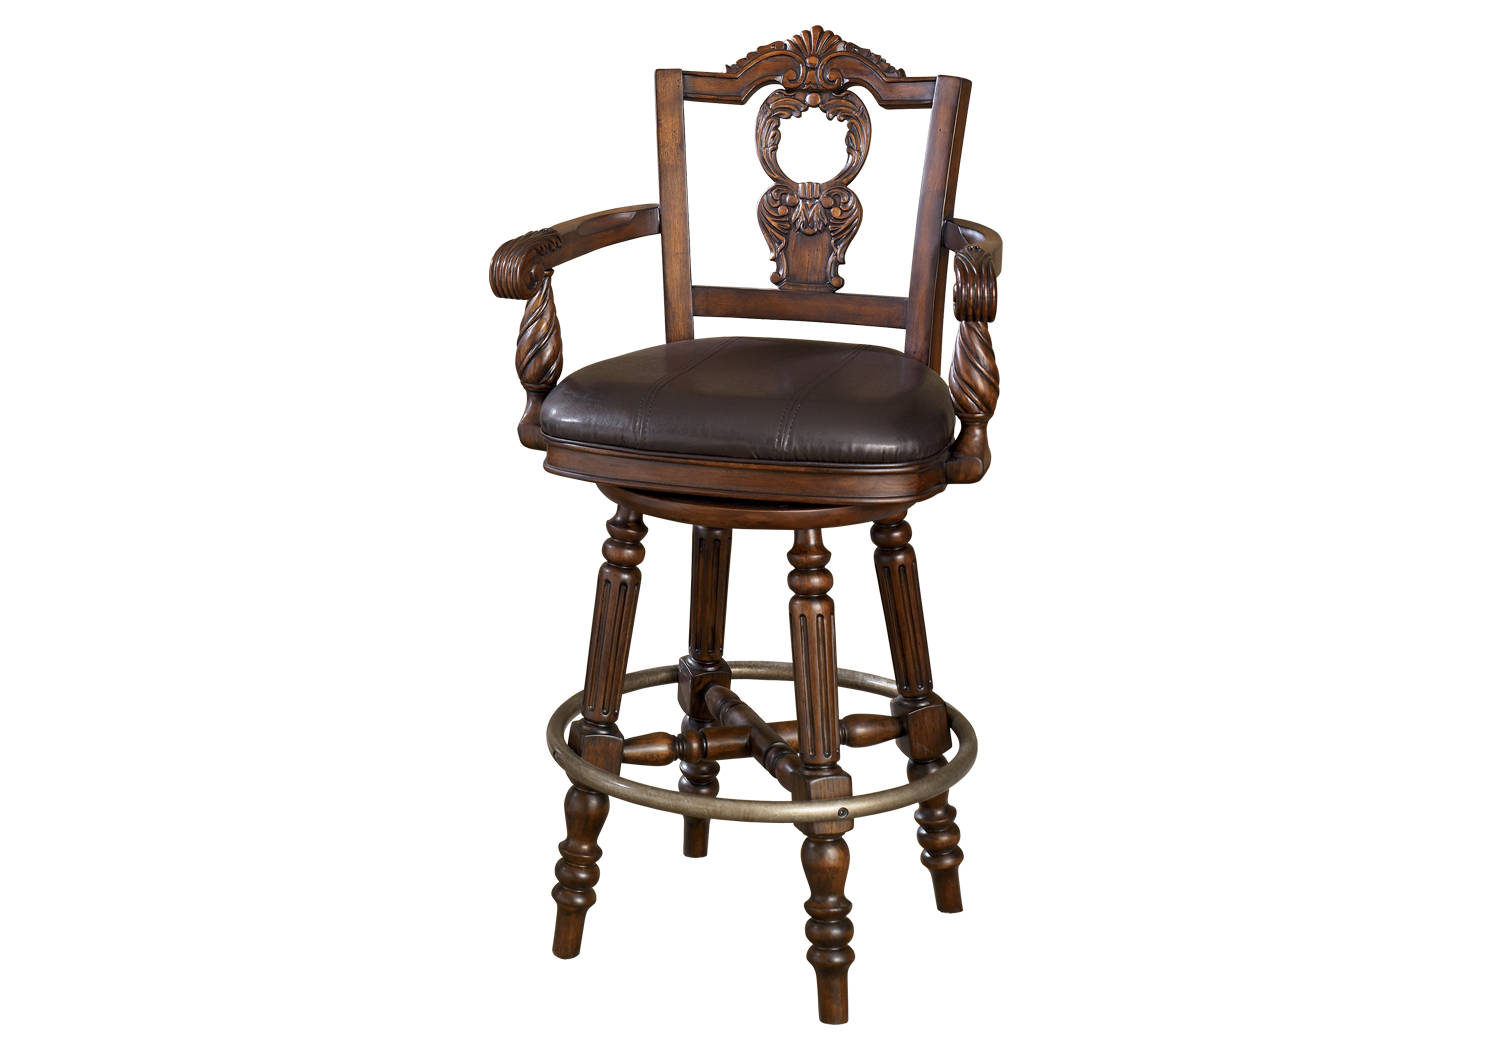 Ashley Furniture North Shore Tall Upholstered Swivel Barstool D553-130 Drk Brown